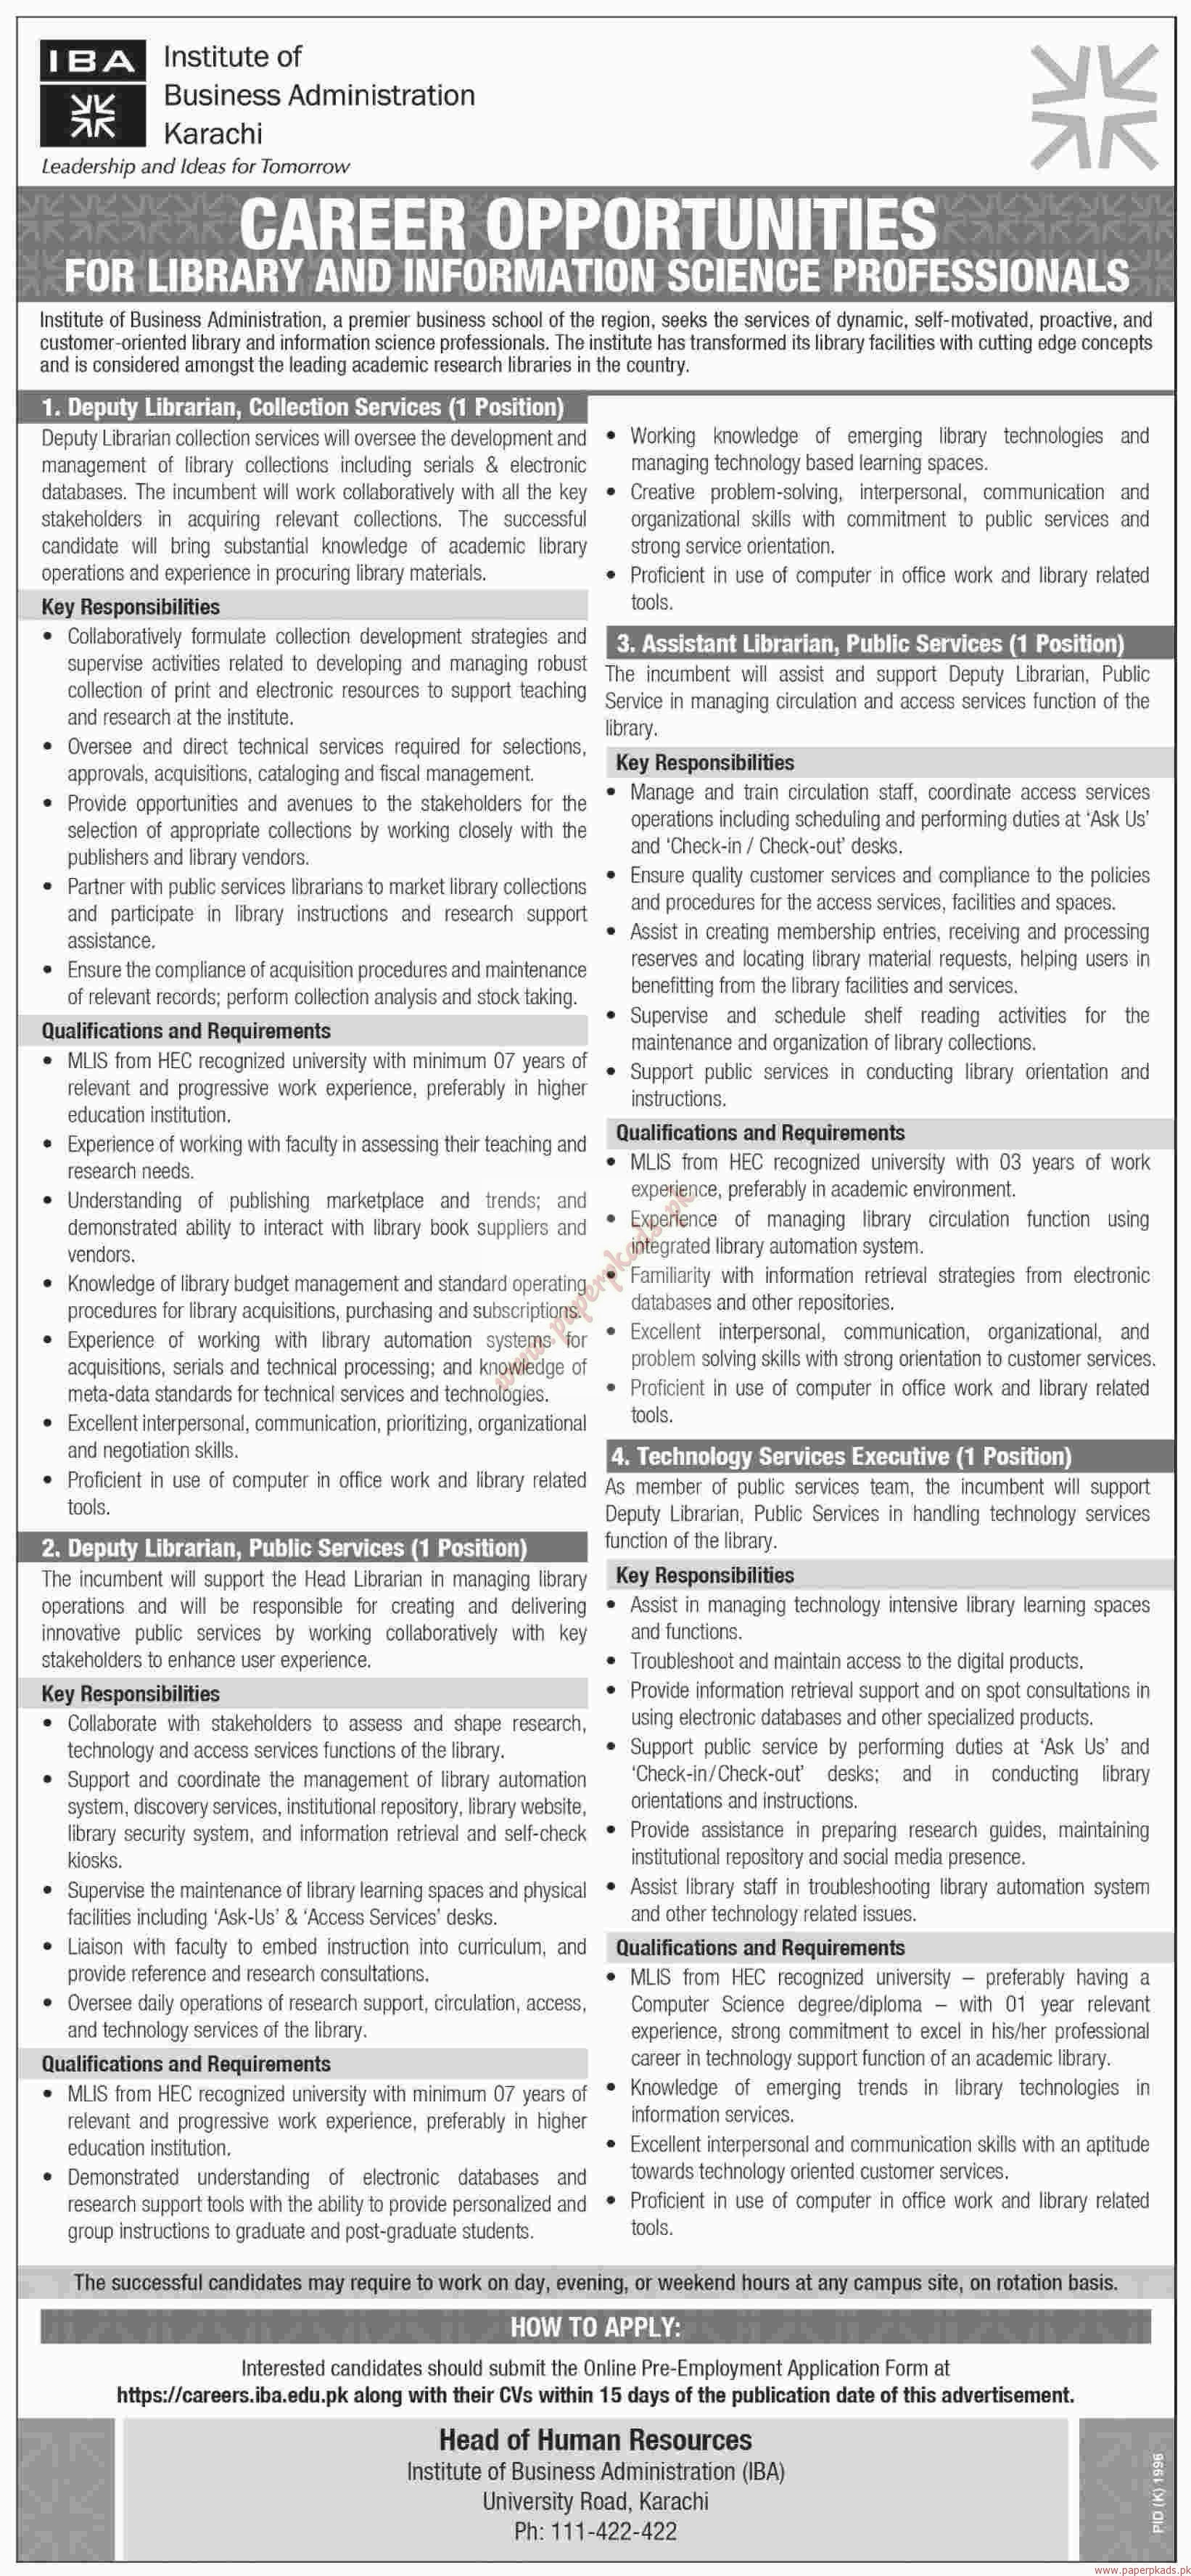 institute of business administration jobs 2 dawn jobs ads 04